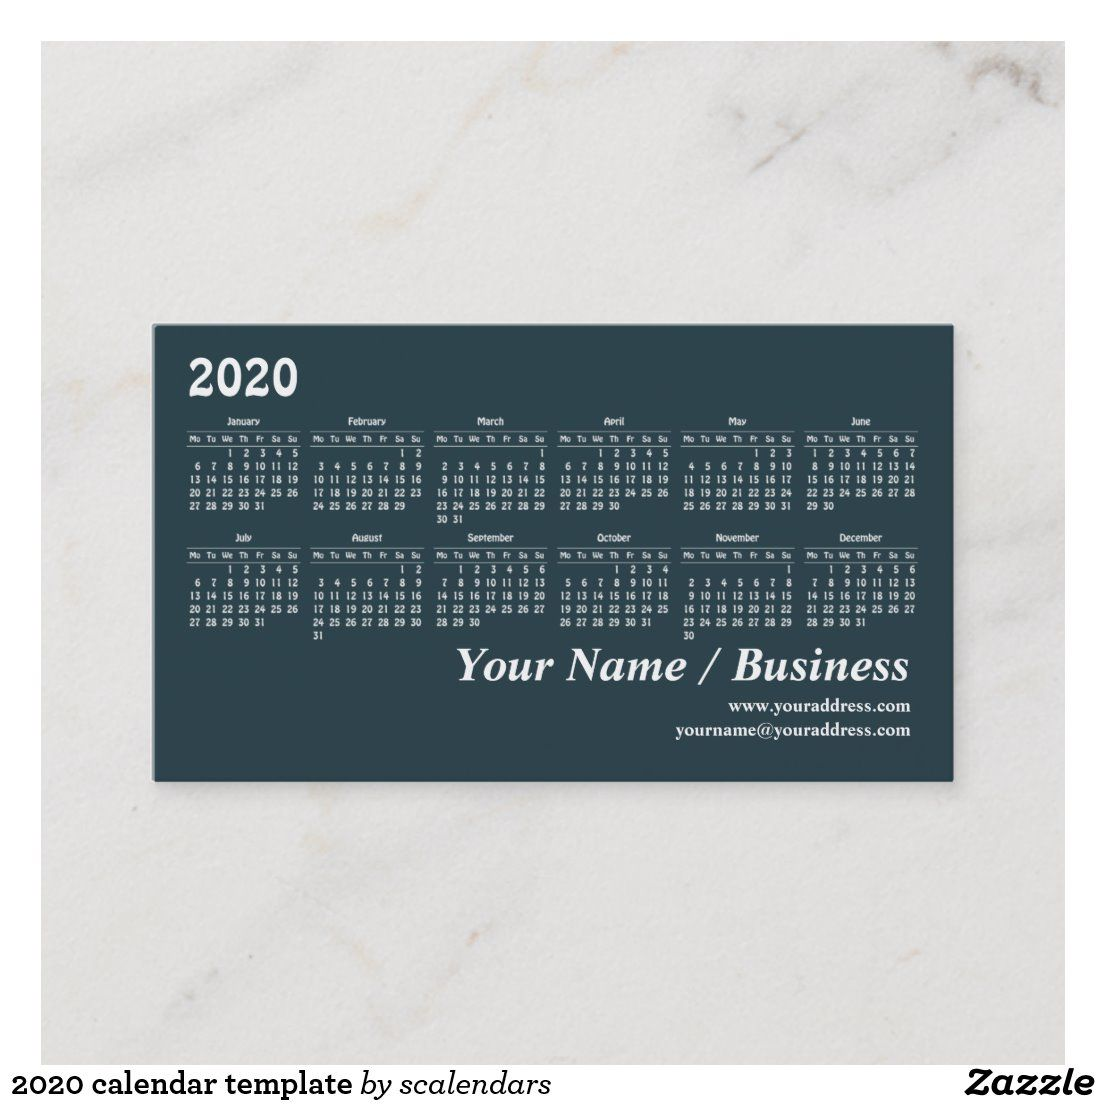 2020 Calendar Template Business Card Zazzle Com 2020 Calendar Template Calendar Template Create Your Own Calendar